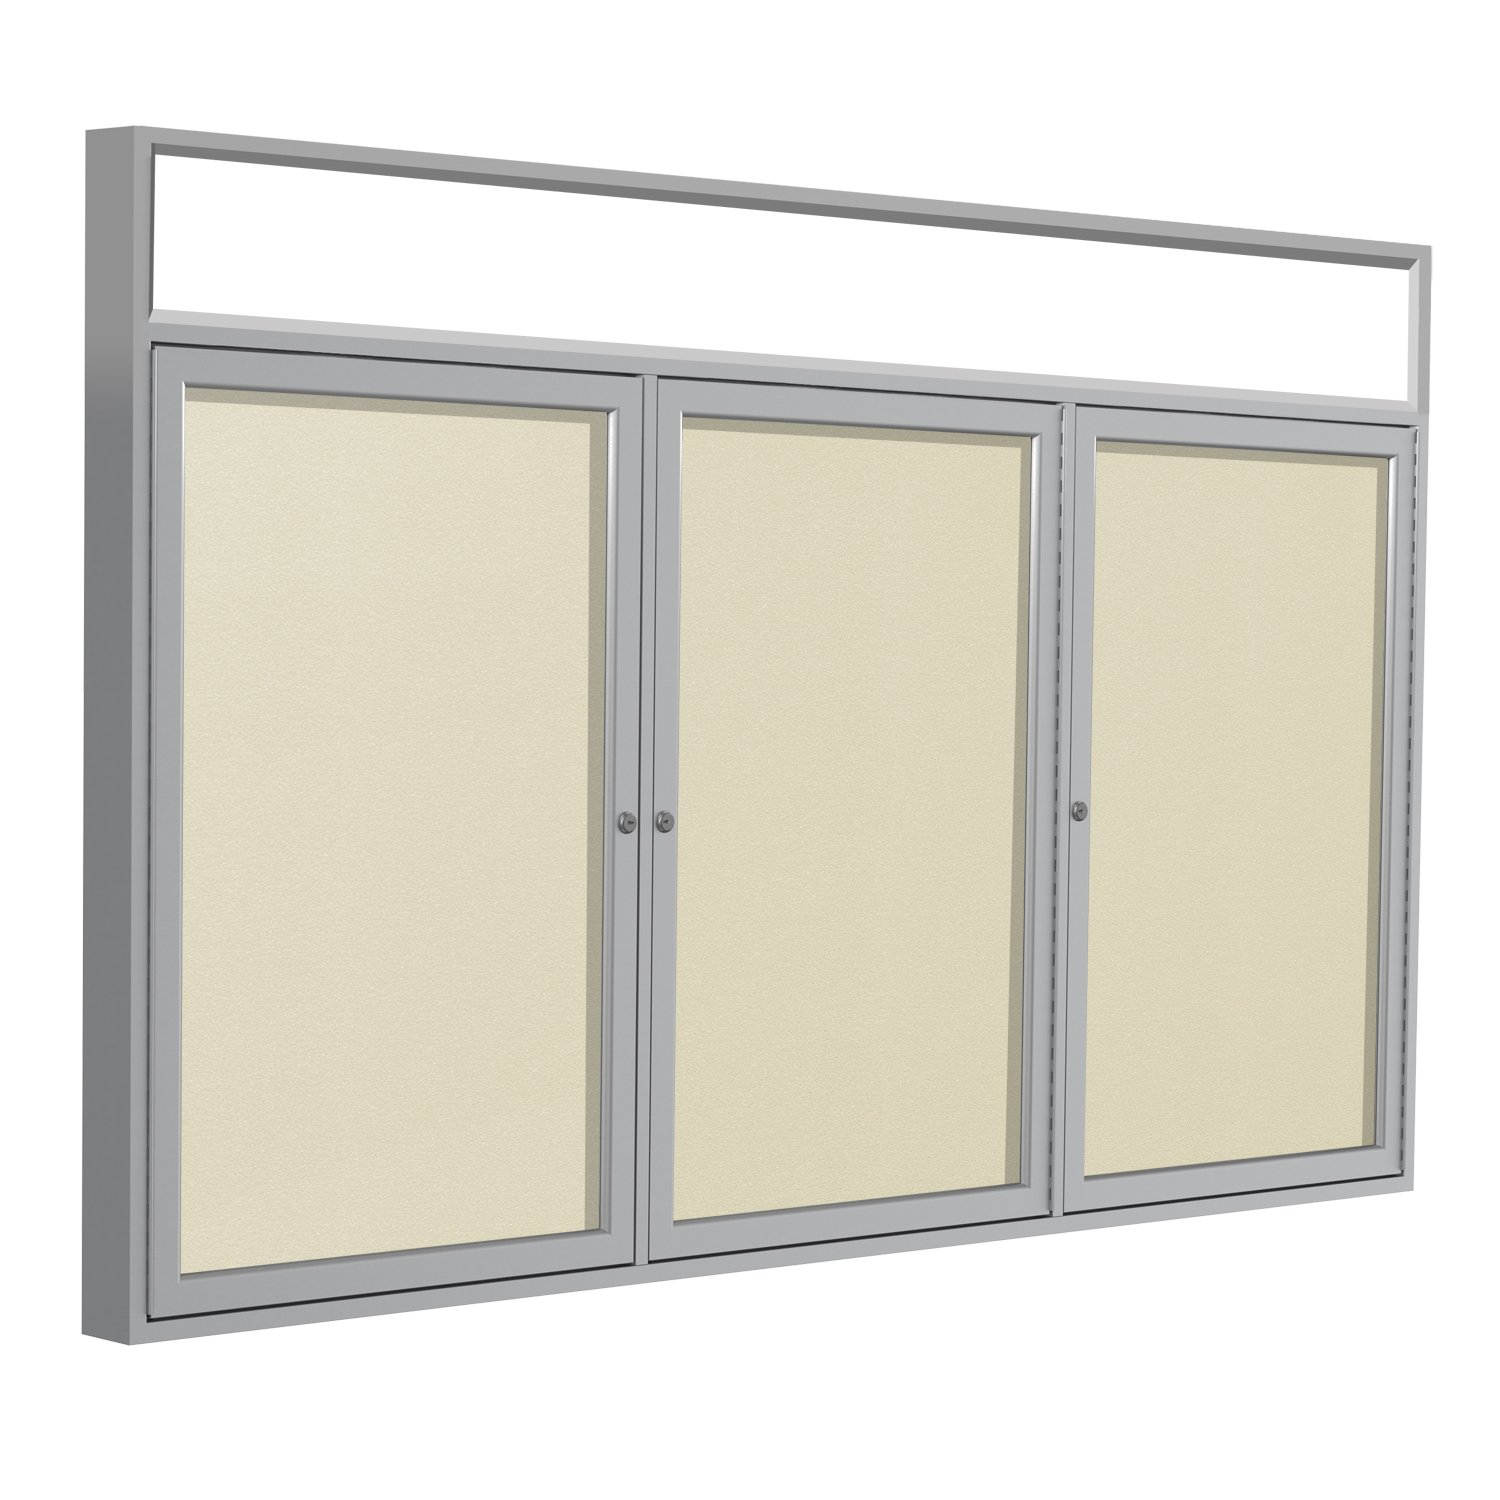 Ghent 36 x 72 Inches Outdoor Satin Frame Enclosed